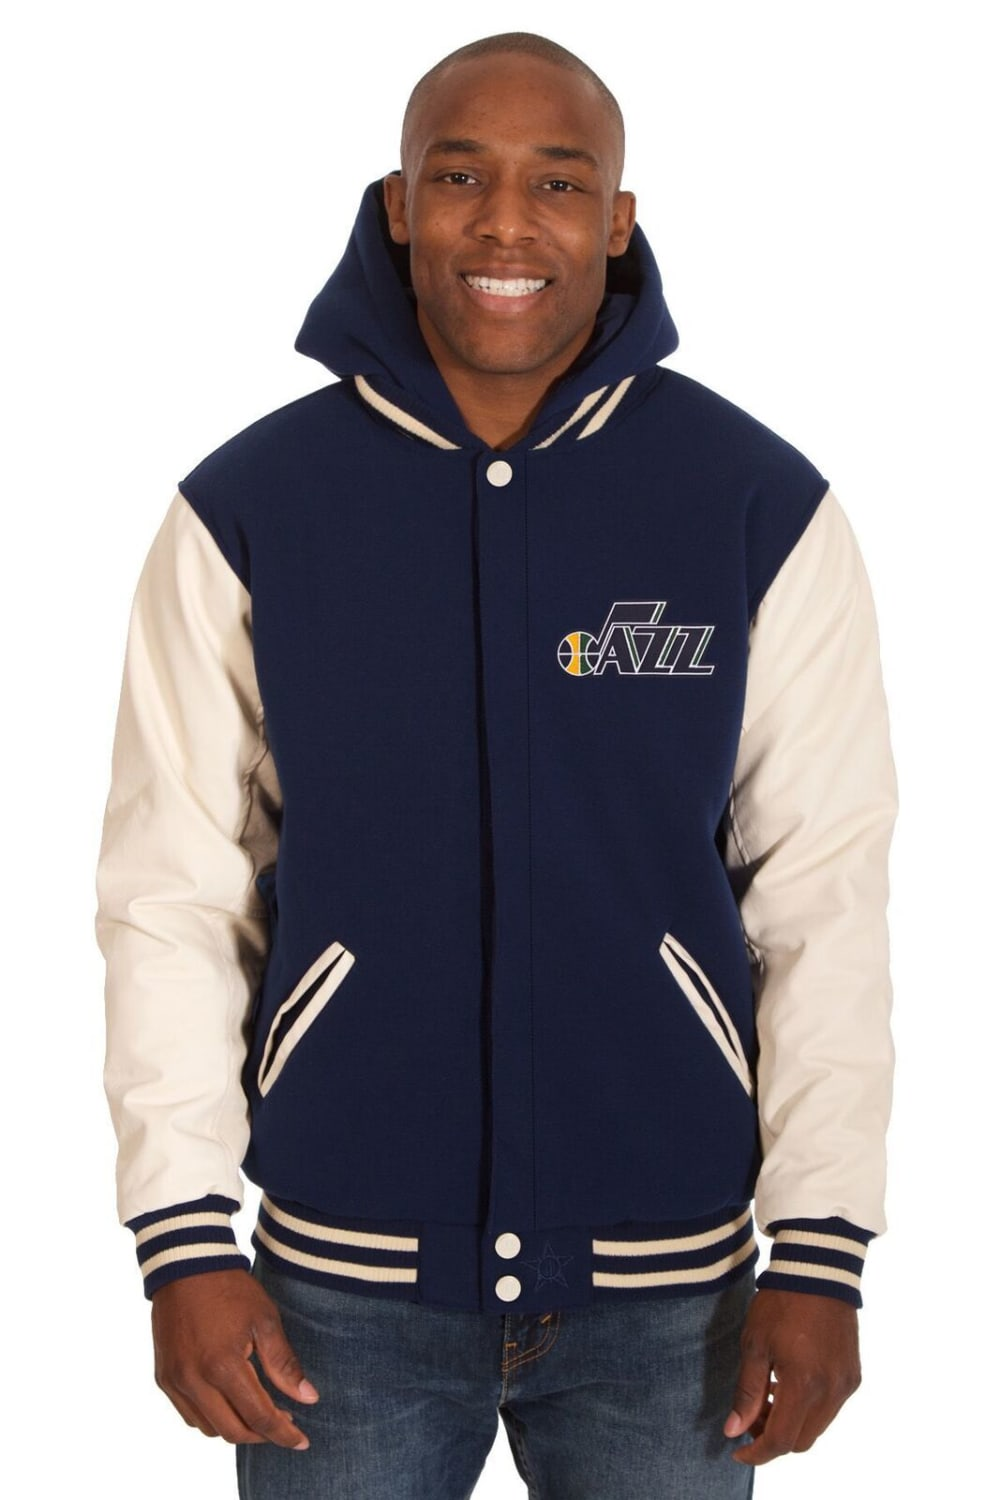 UTAH JAZZ Men's Reversible Fleece Hooded Jacket - NAVY CREAM